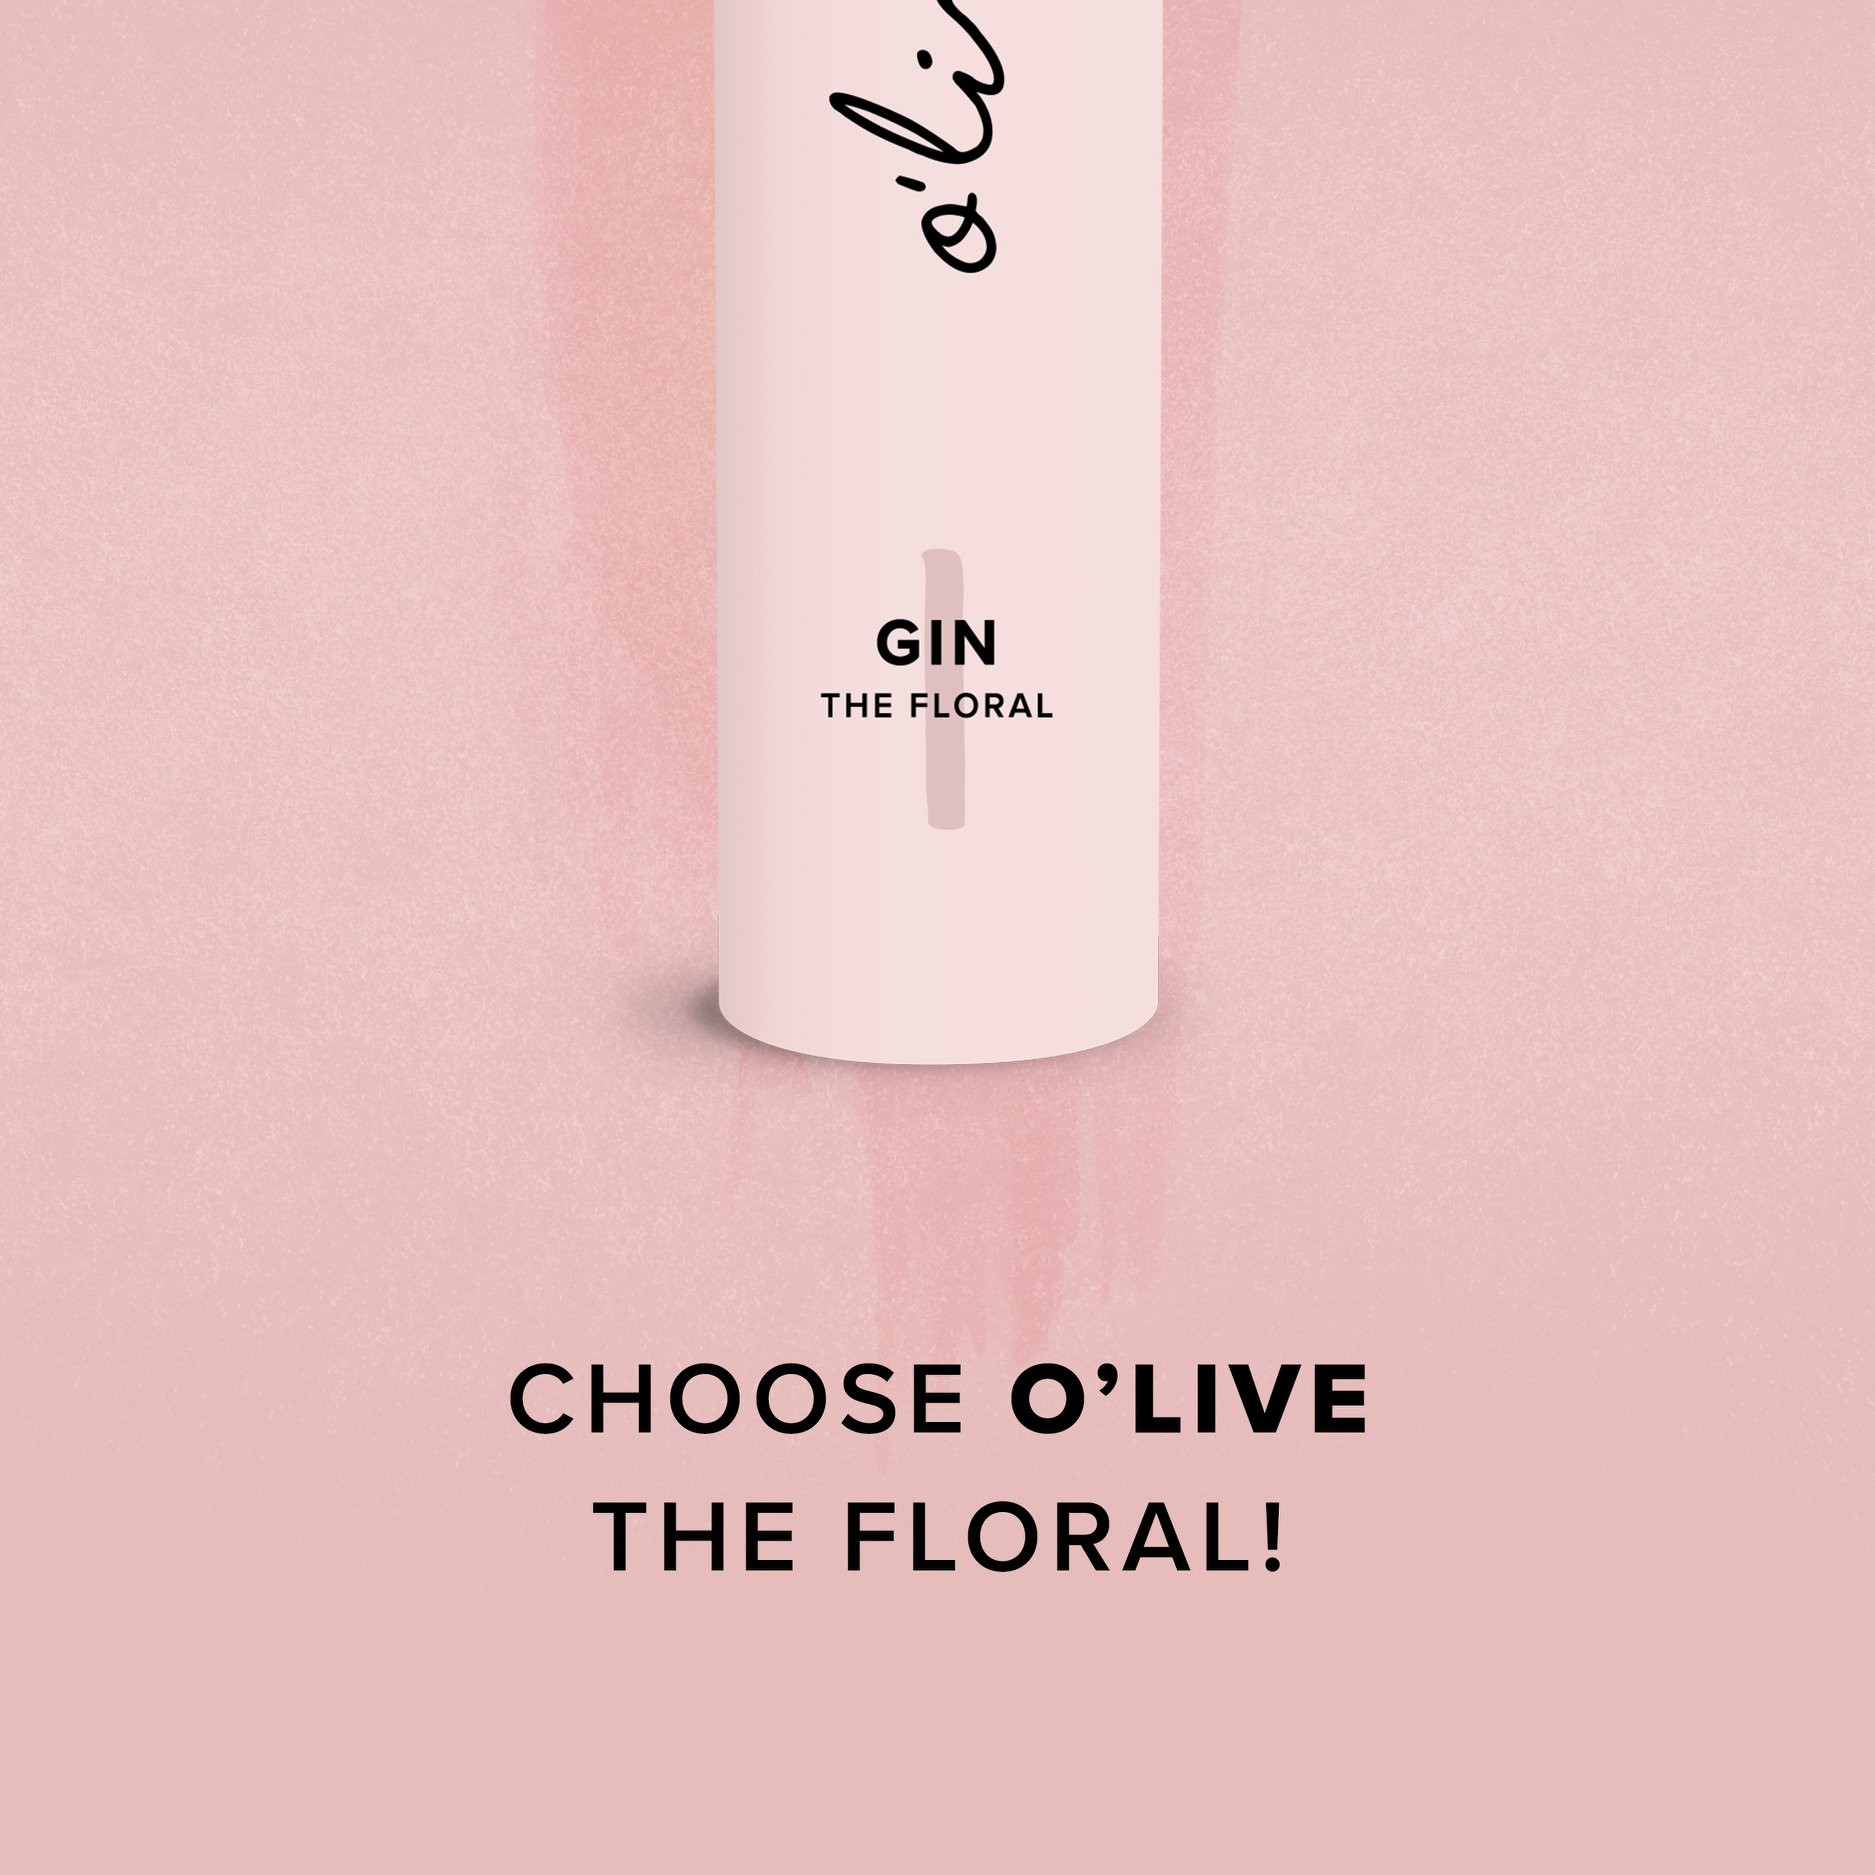 GIN O'Live THE FLORAL 0.5l-...